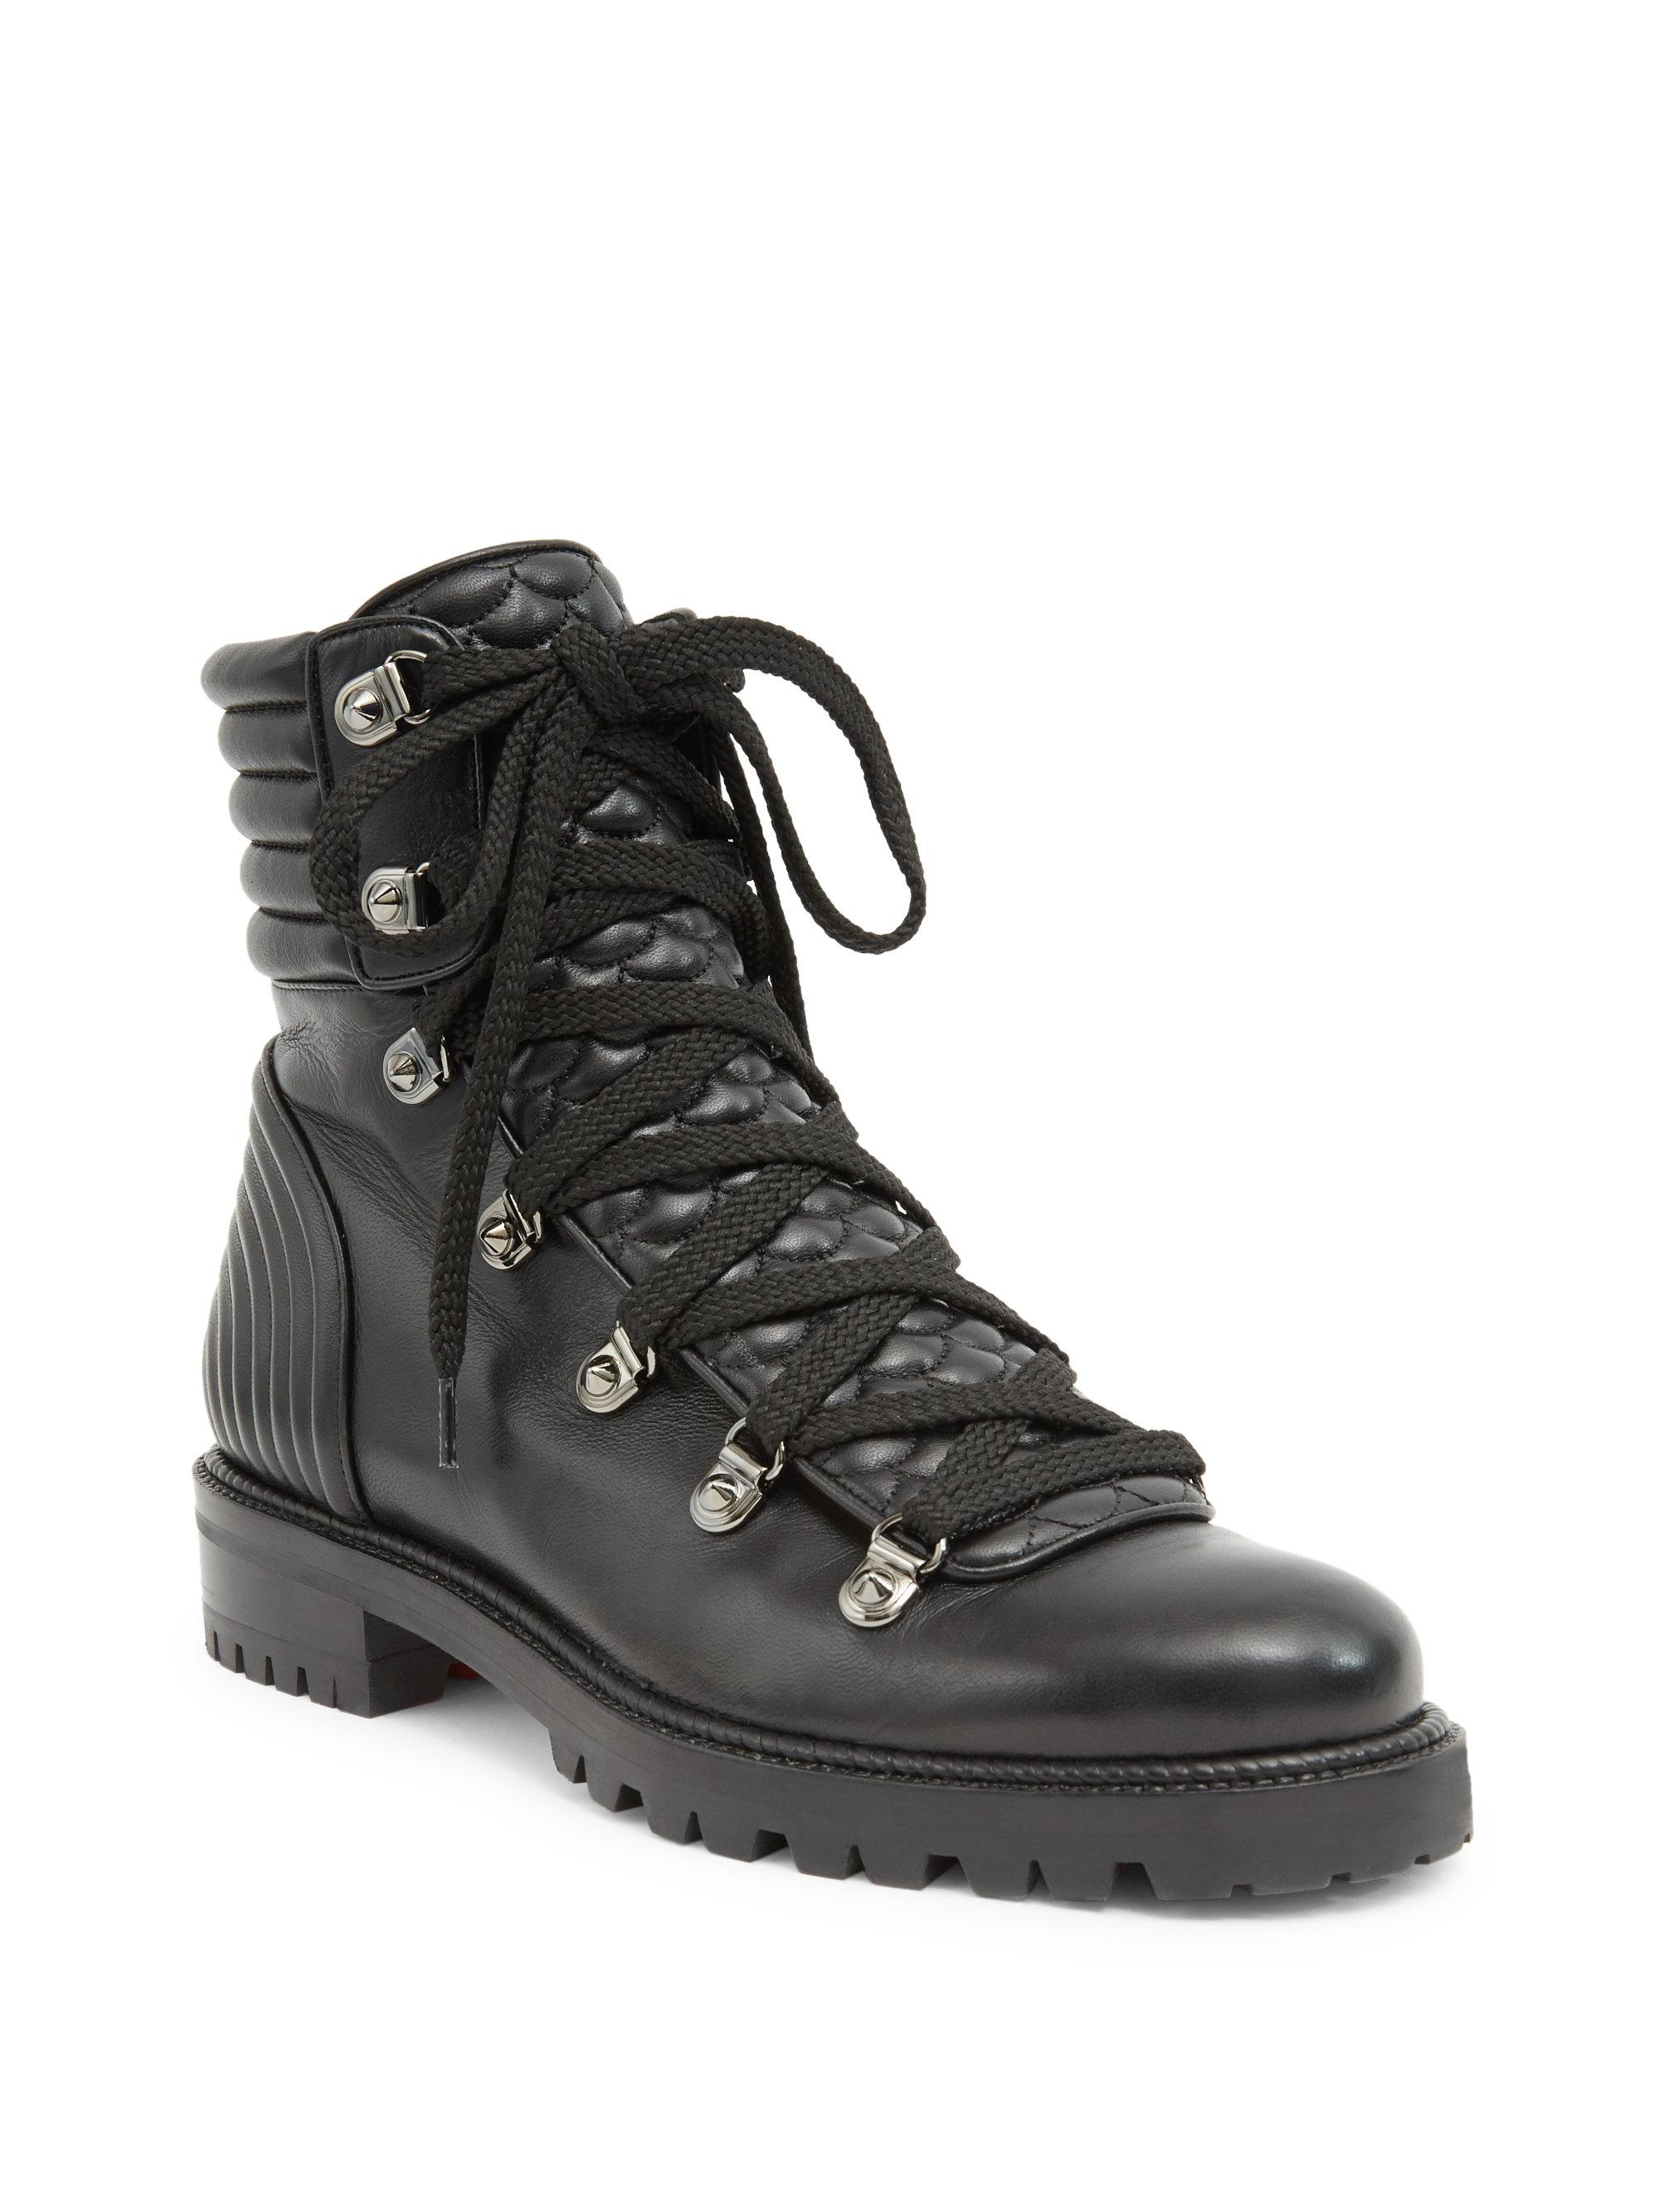 Lyst - Christian louboutin Mad Boot Quilted Leather Booties in Black : quilted booties - Adamdwight.com